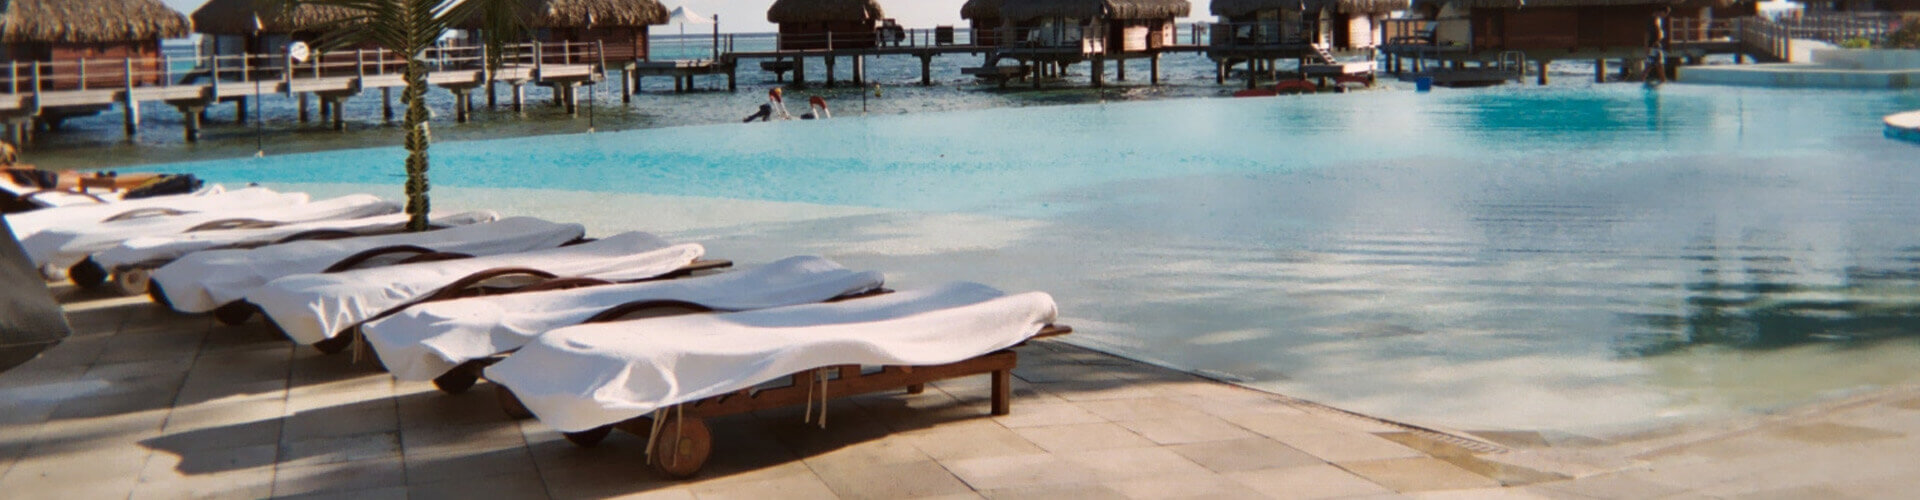 photo of the swimming poll of the hotel Moorea Pearl beach Resort